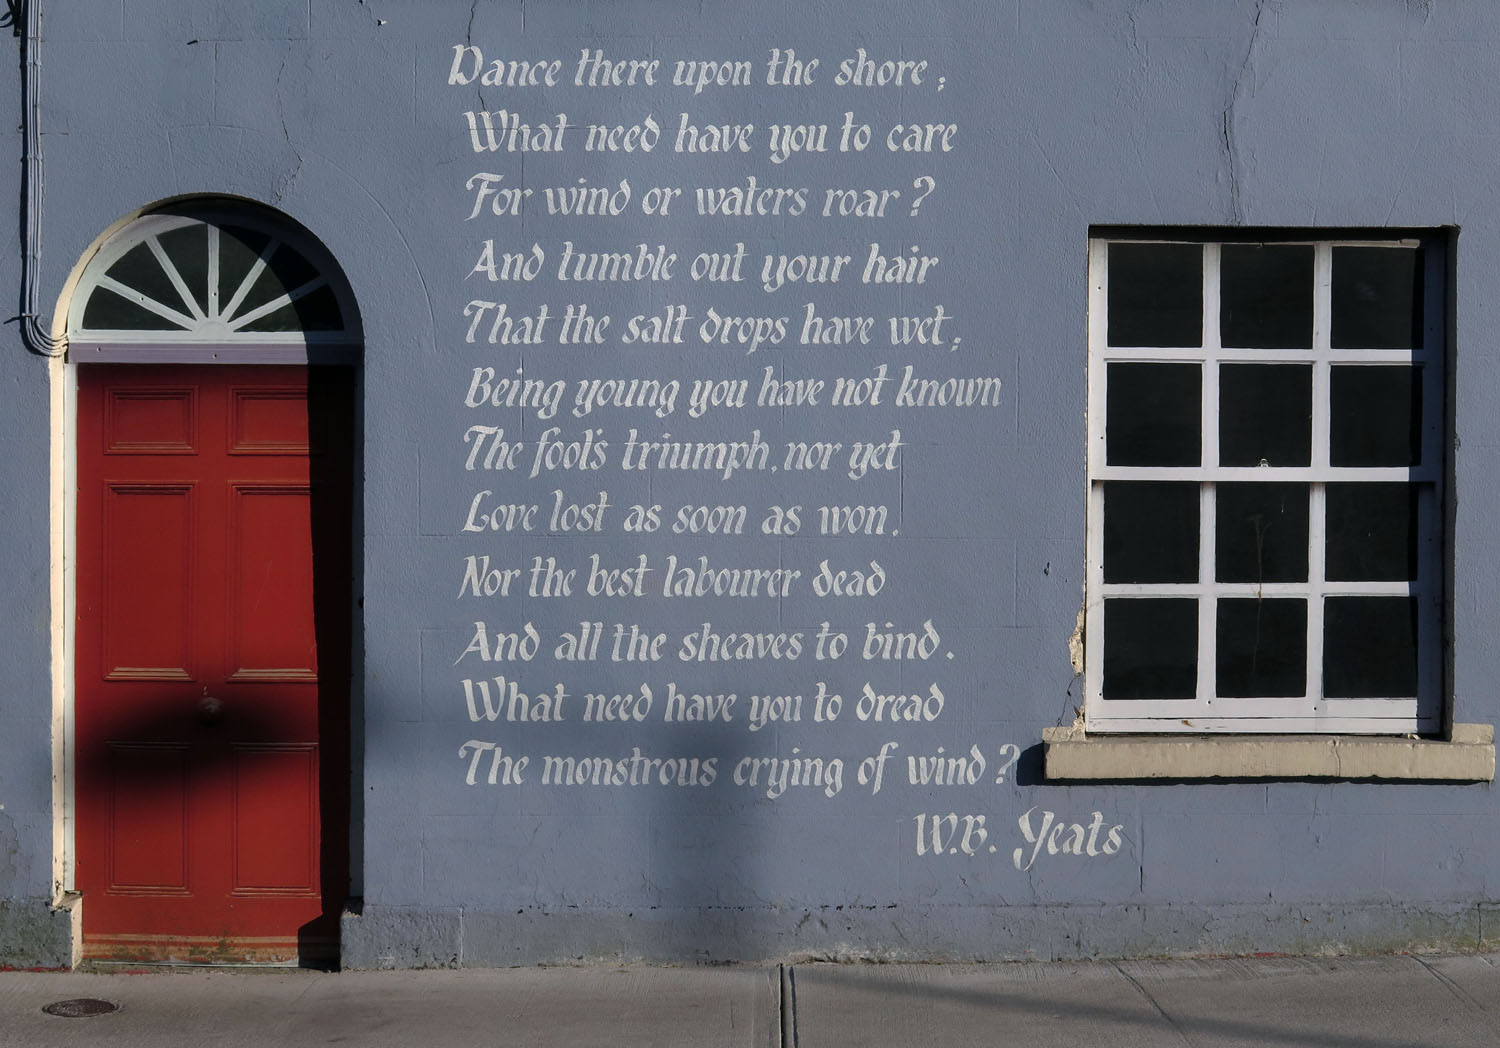 Ireland-Sights-And-Scenery-Sligo-Yeats-Poem